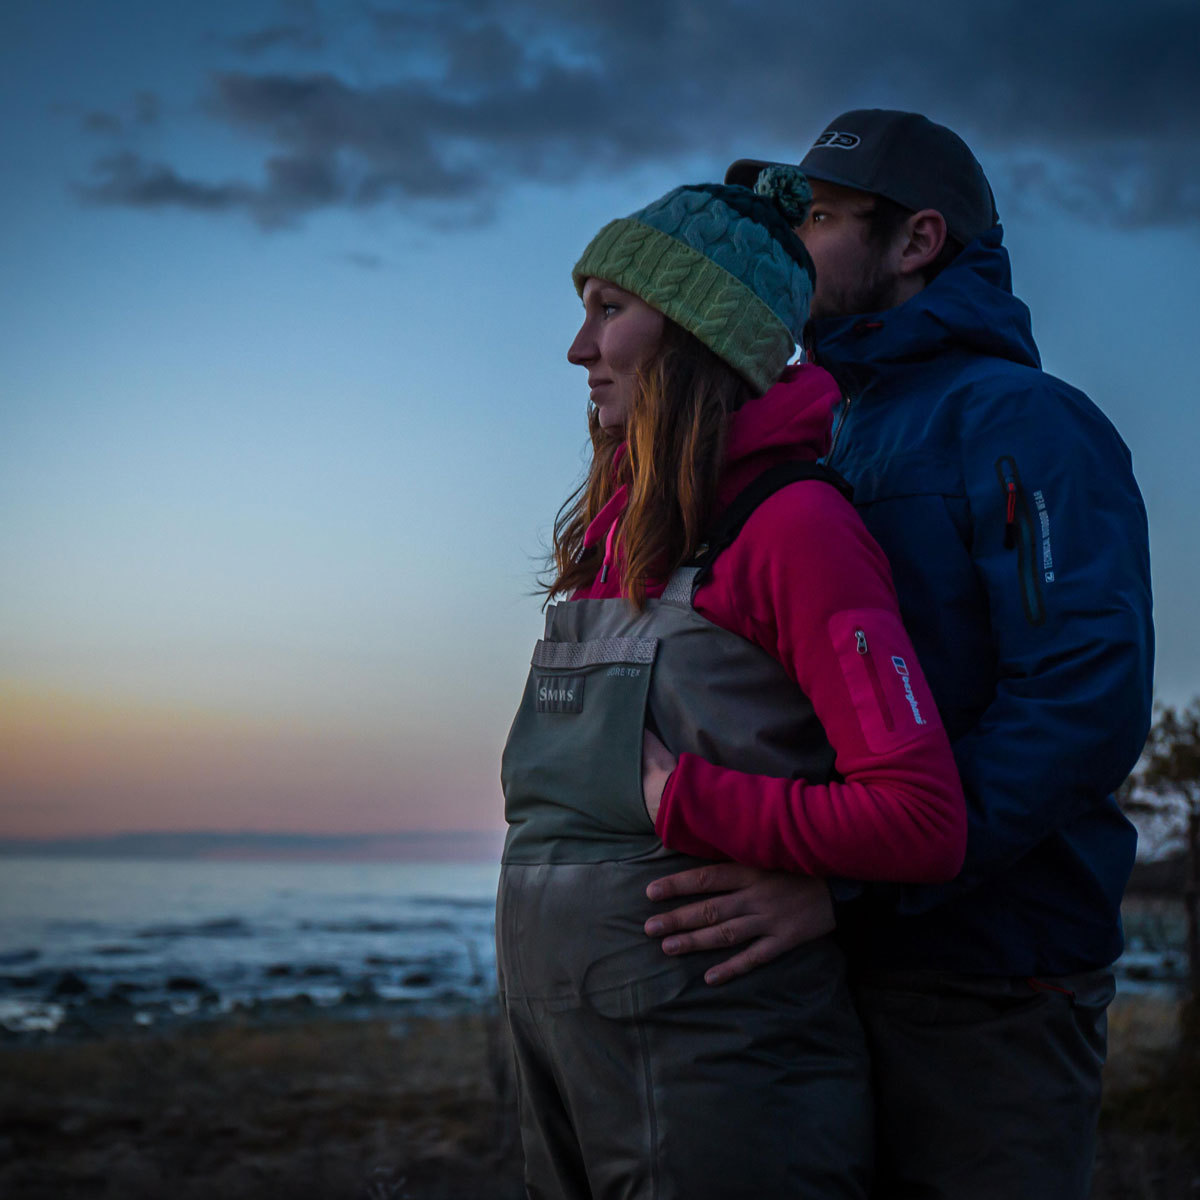 Me, My Baby Bump and Our Fly Fishing Life